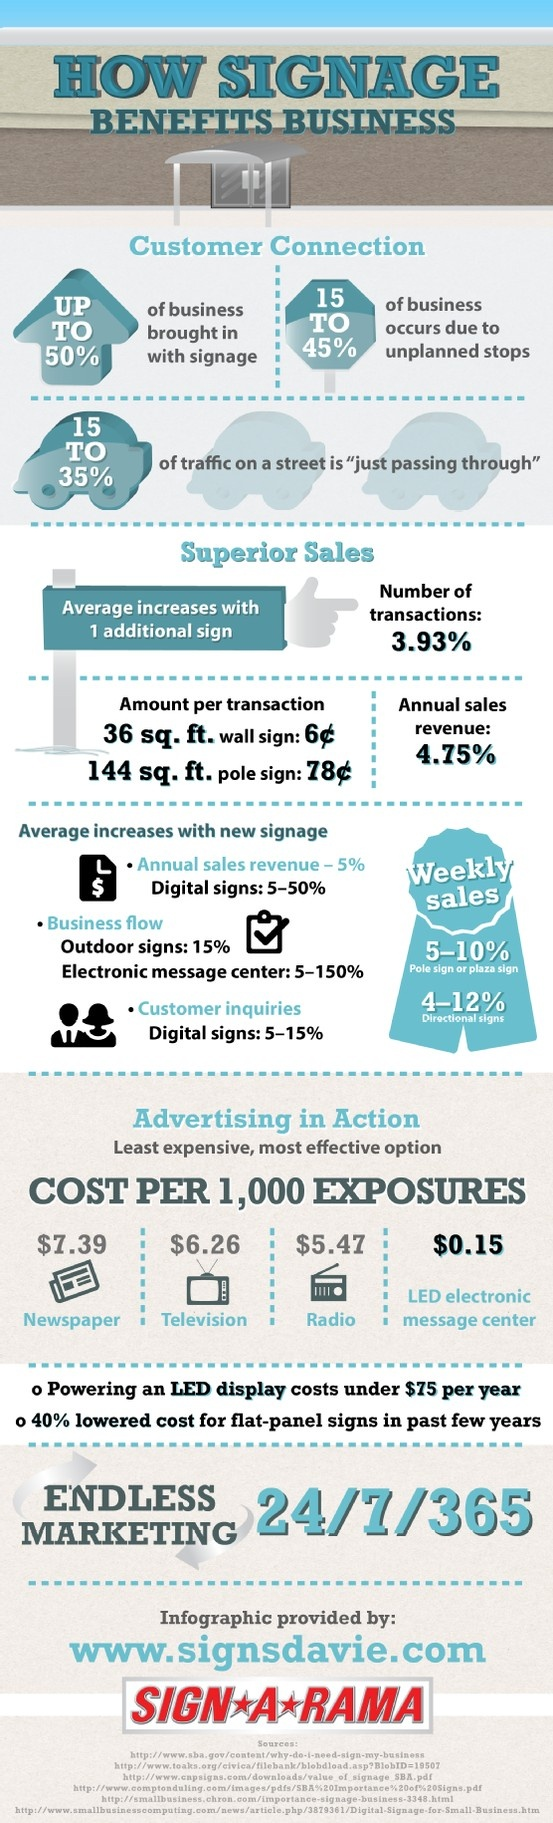 Powering an LED display costs less than $75 a year. Using a sign provides your business with around-the-clock advertising. Learn more about how business signs can benefit a company in this Sign A Rama infographic.